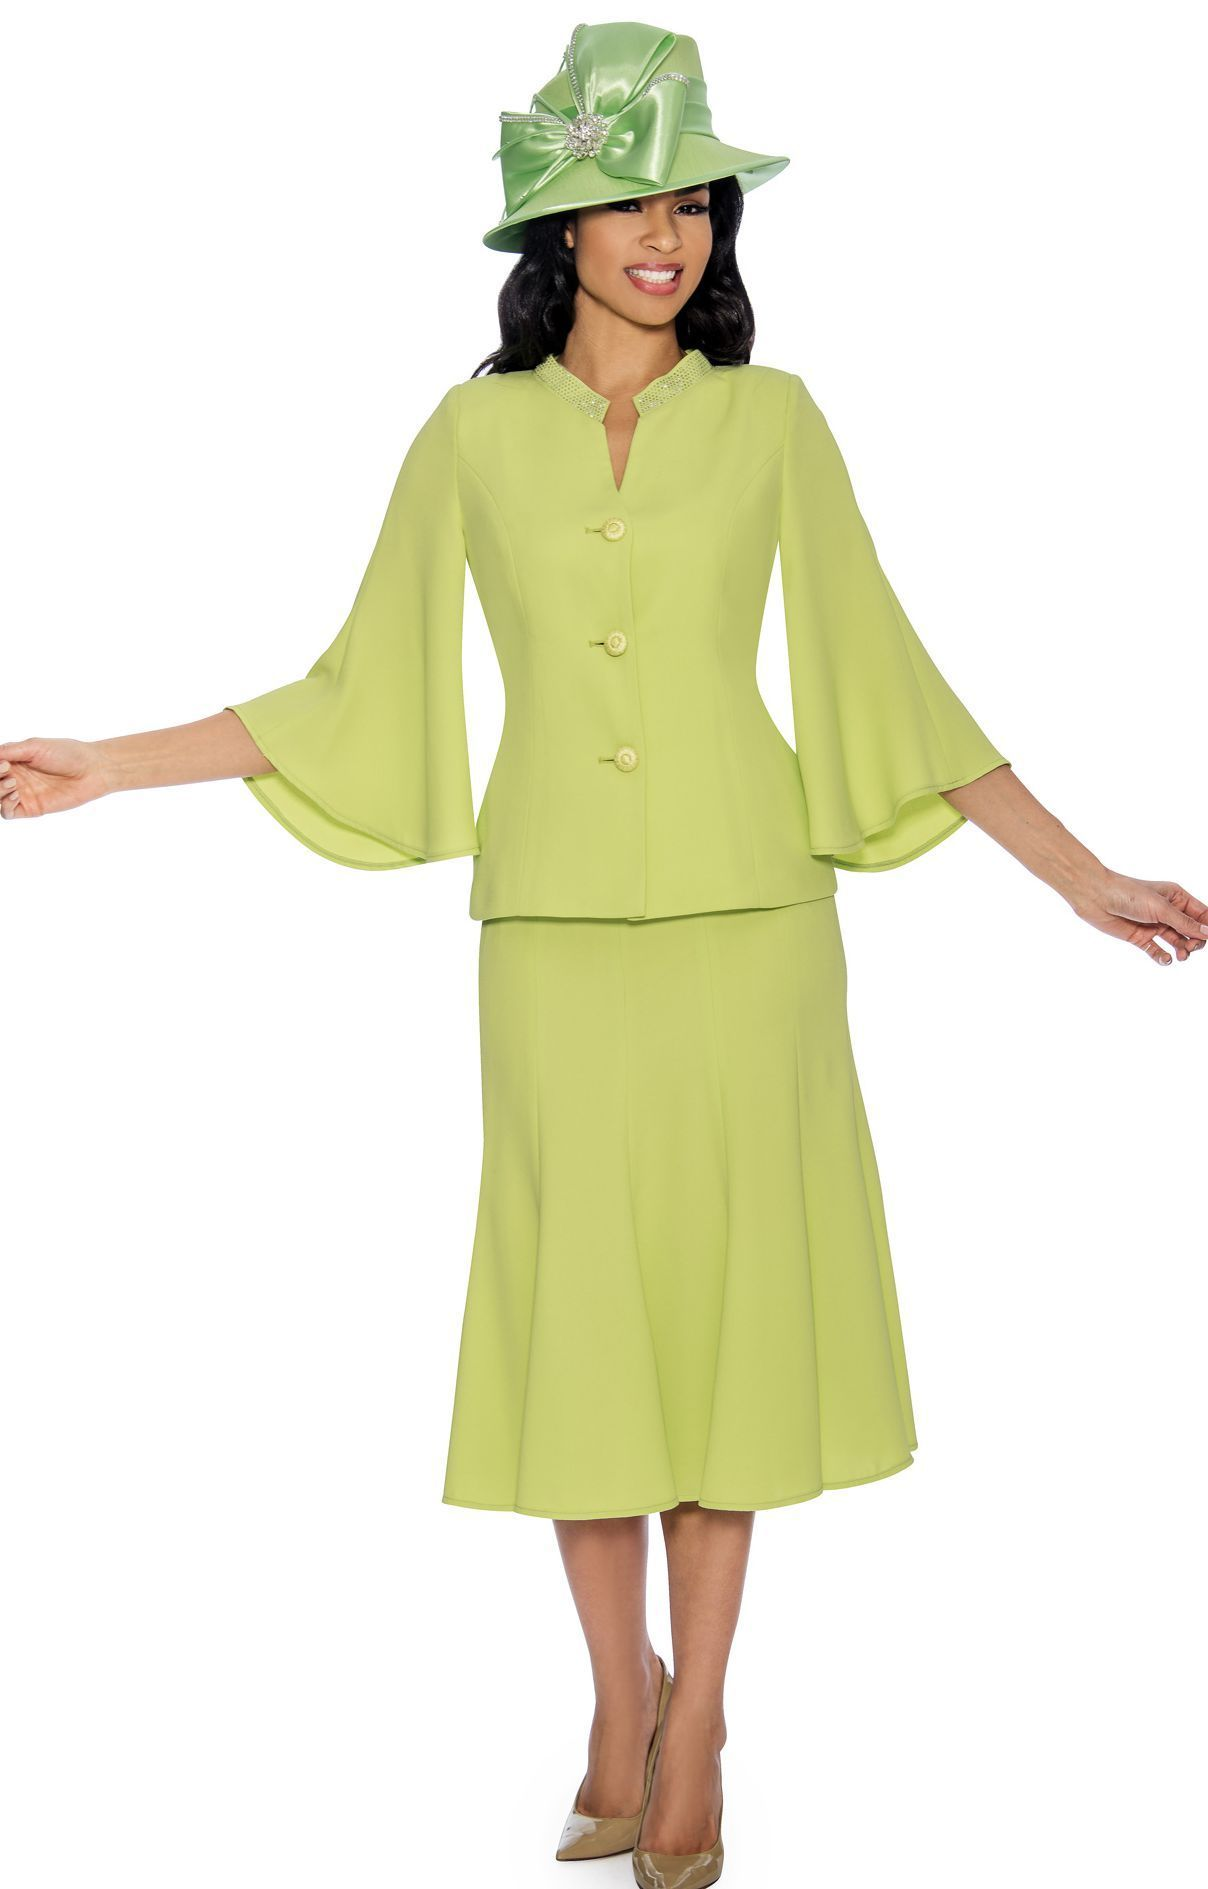 b7256347f4e Giovanna Usher Suit 0711-Lime - Church Suits For Less